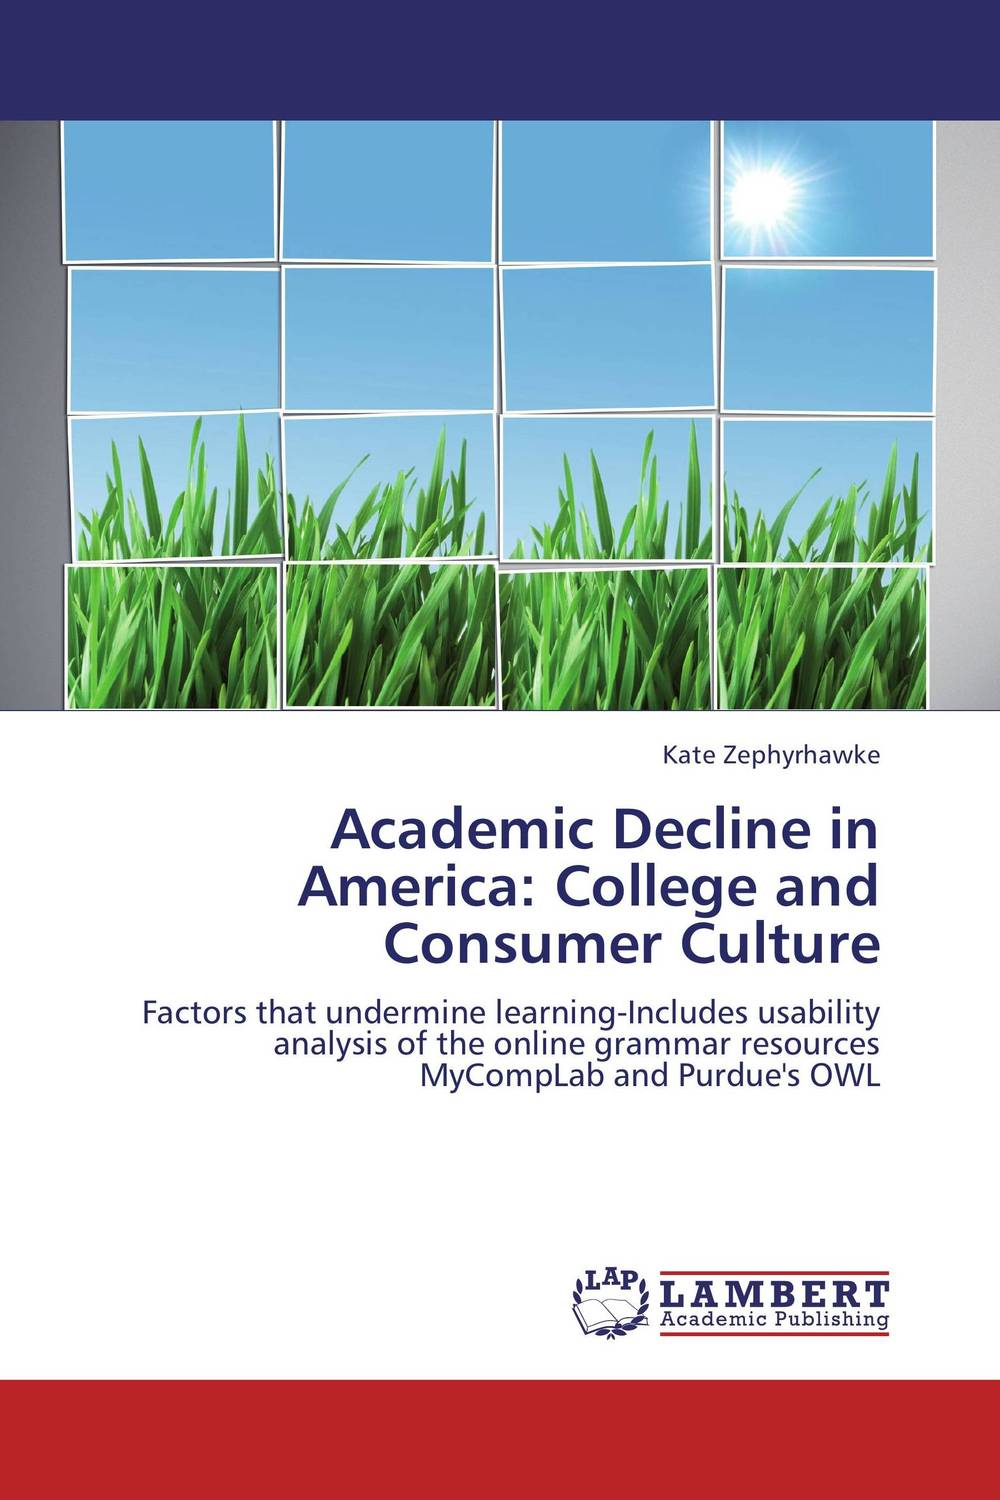 Academic Decline in America: College and Consumer Culture doug lemov teach like a champion 2 0 62 techniques that put students on the path to college